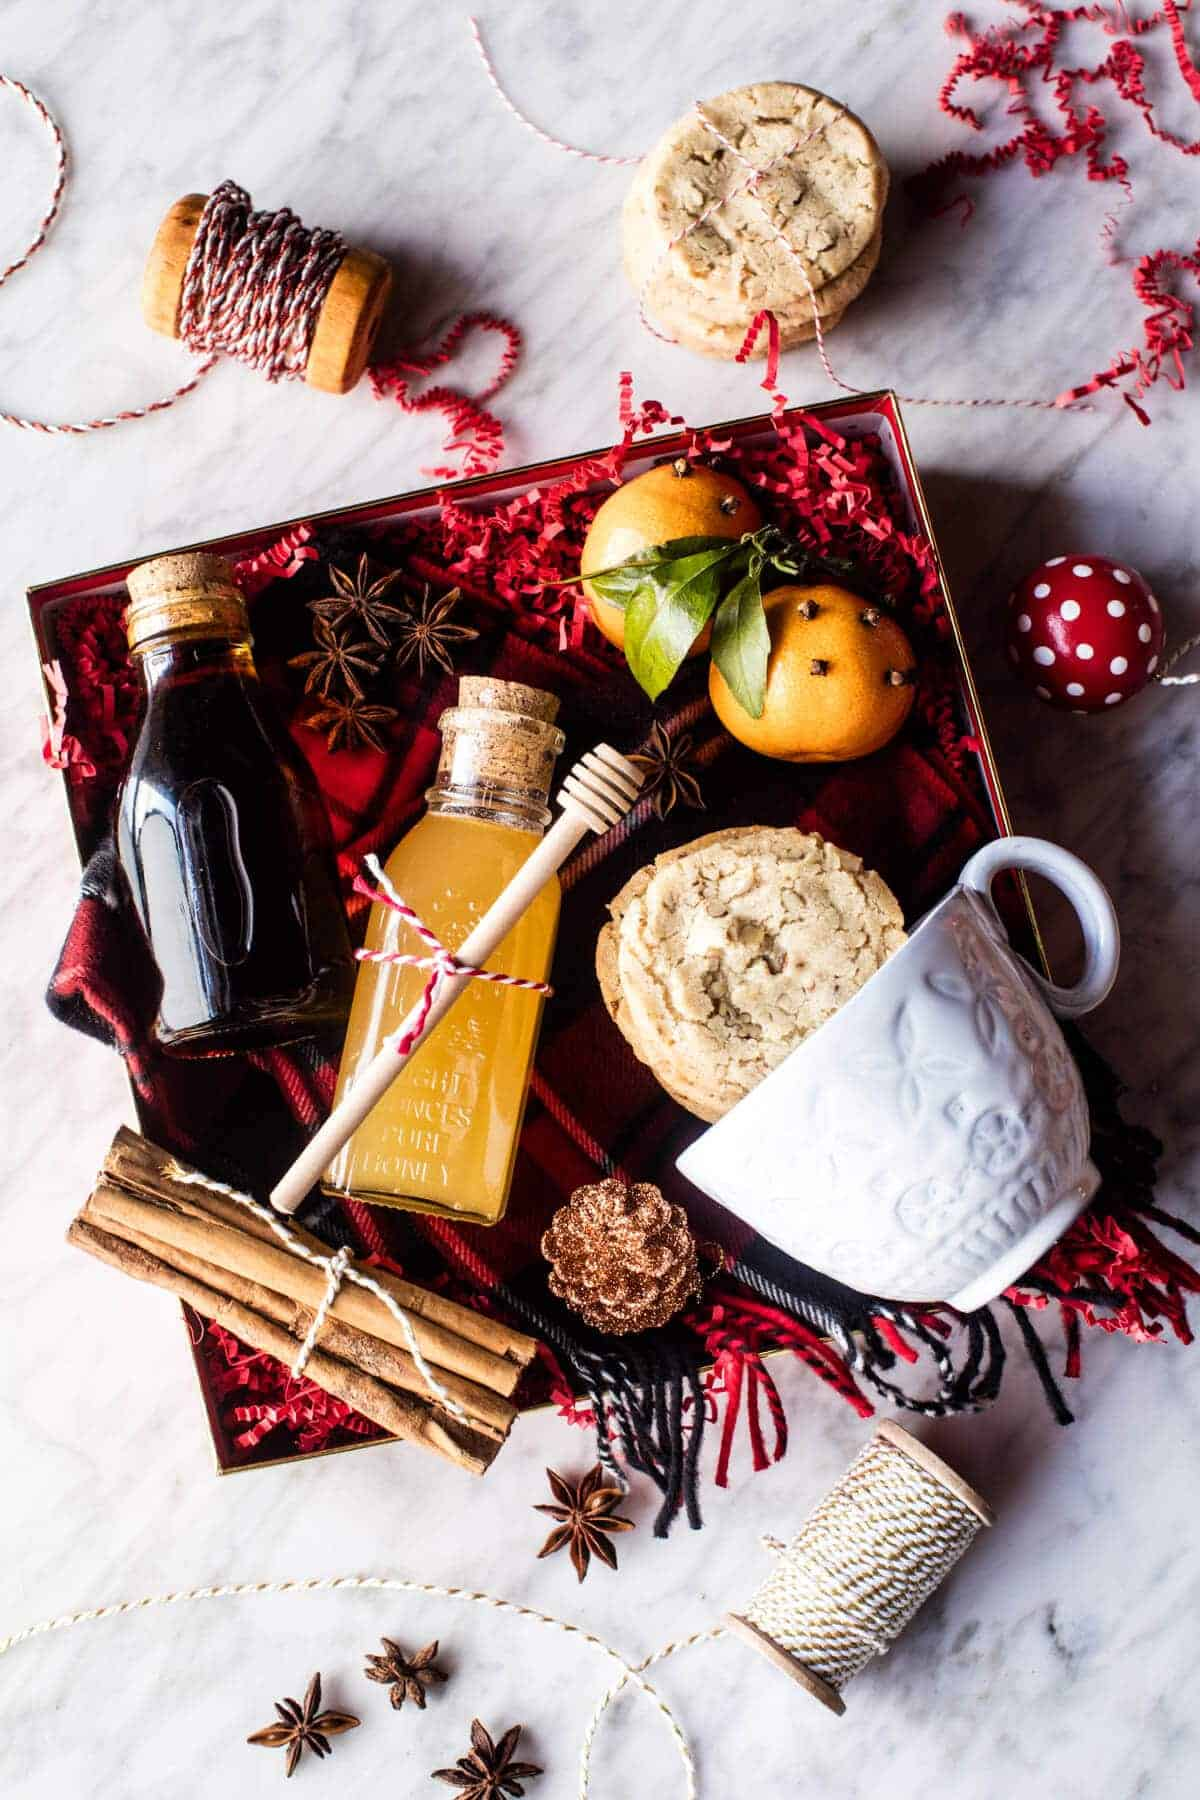 Coziest Homemade Hot Toddy Kit | halfbakedharvest.com @hbharvest